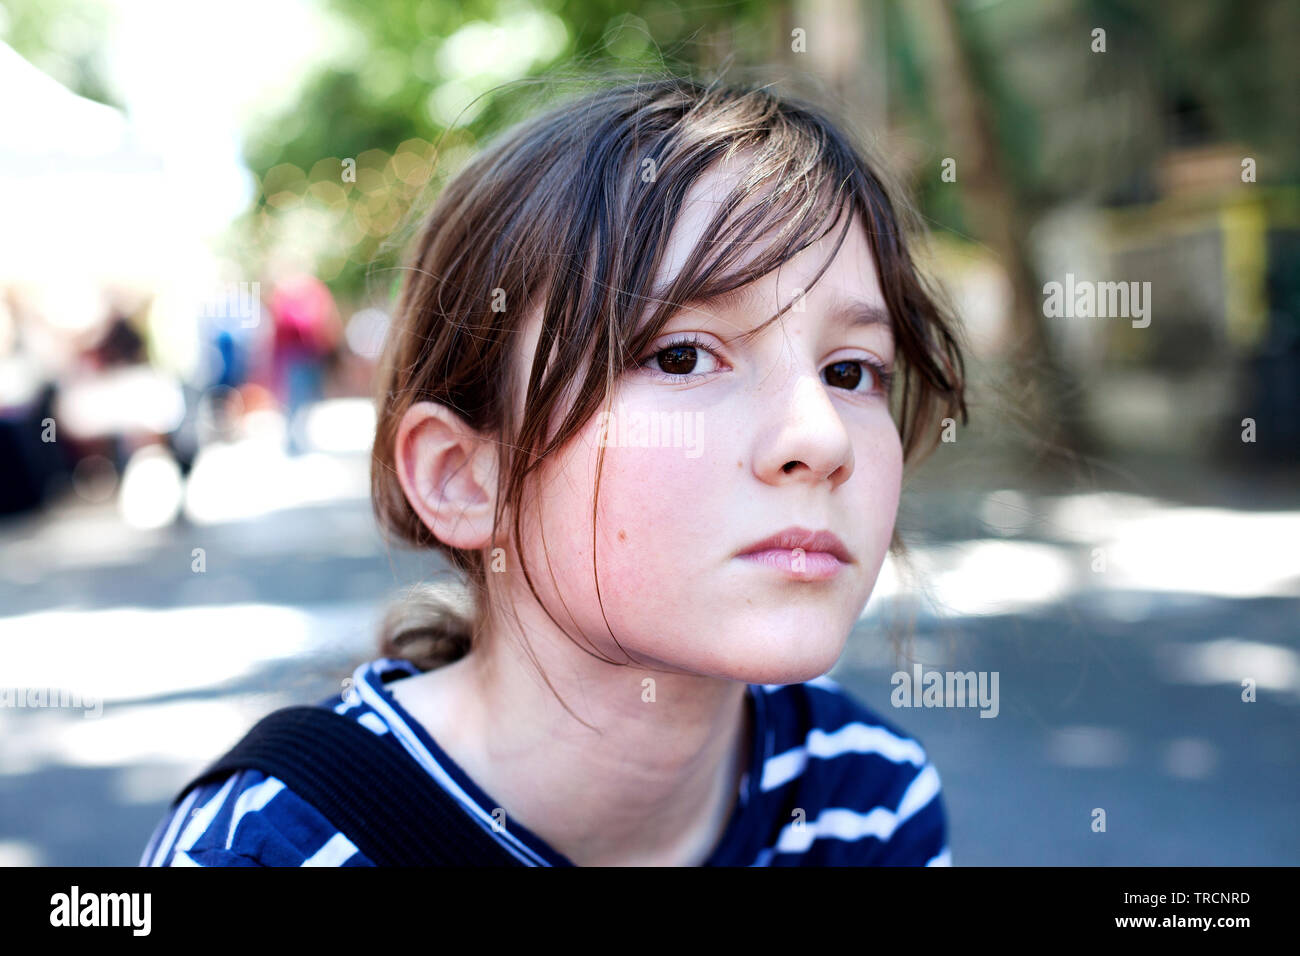 Boy looking thoughtful. - Stock Image